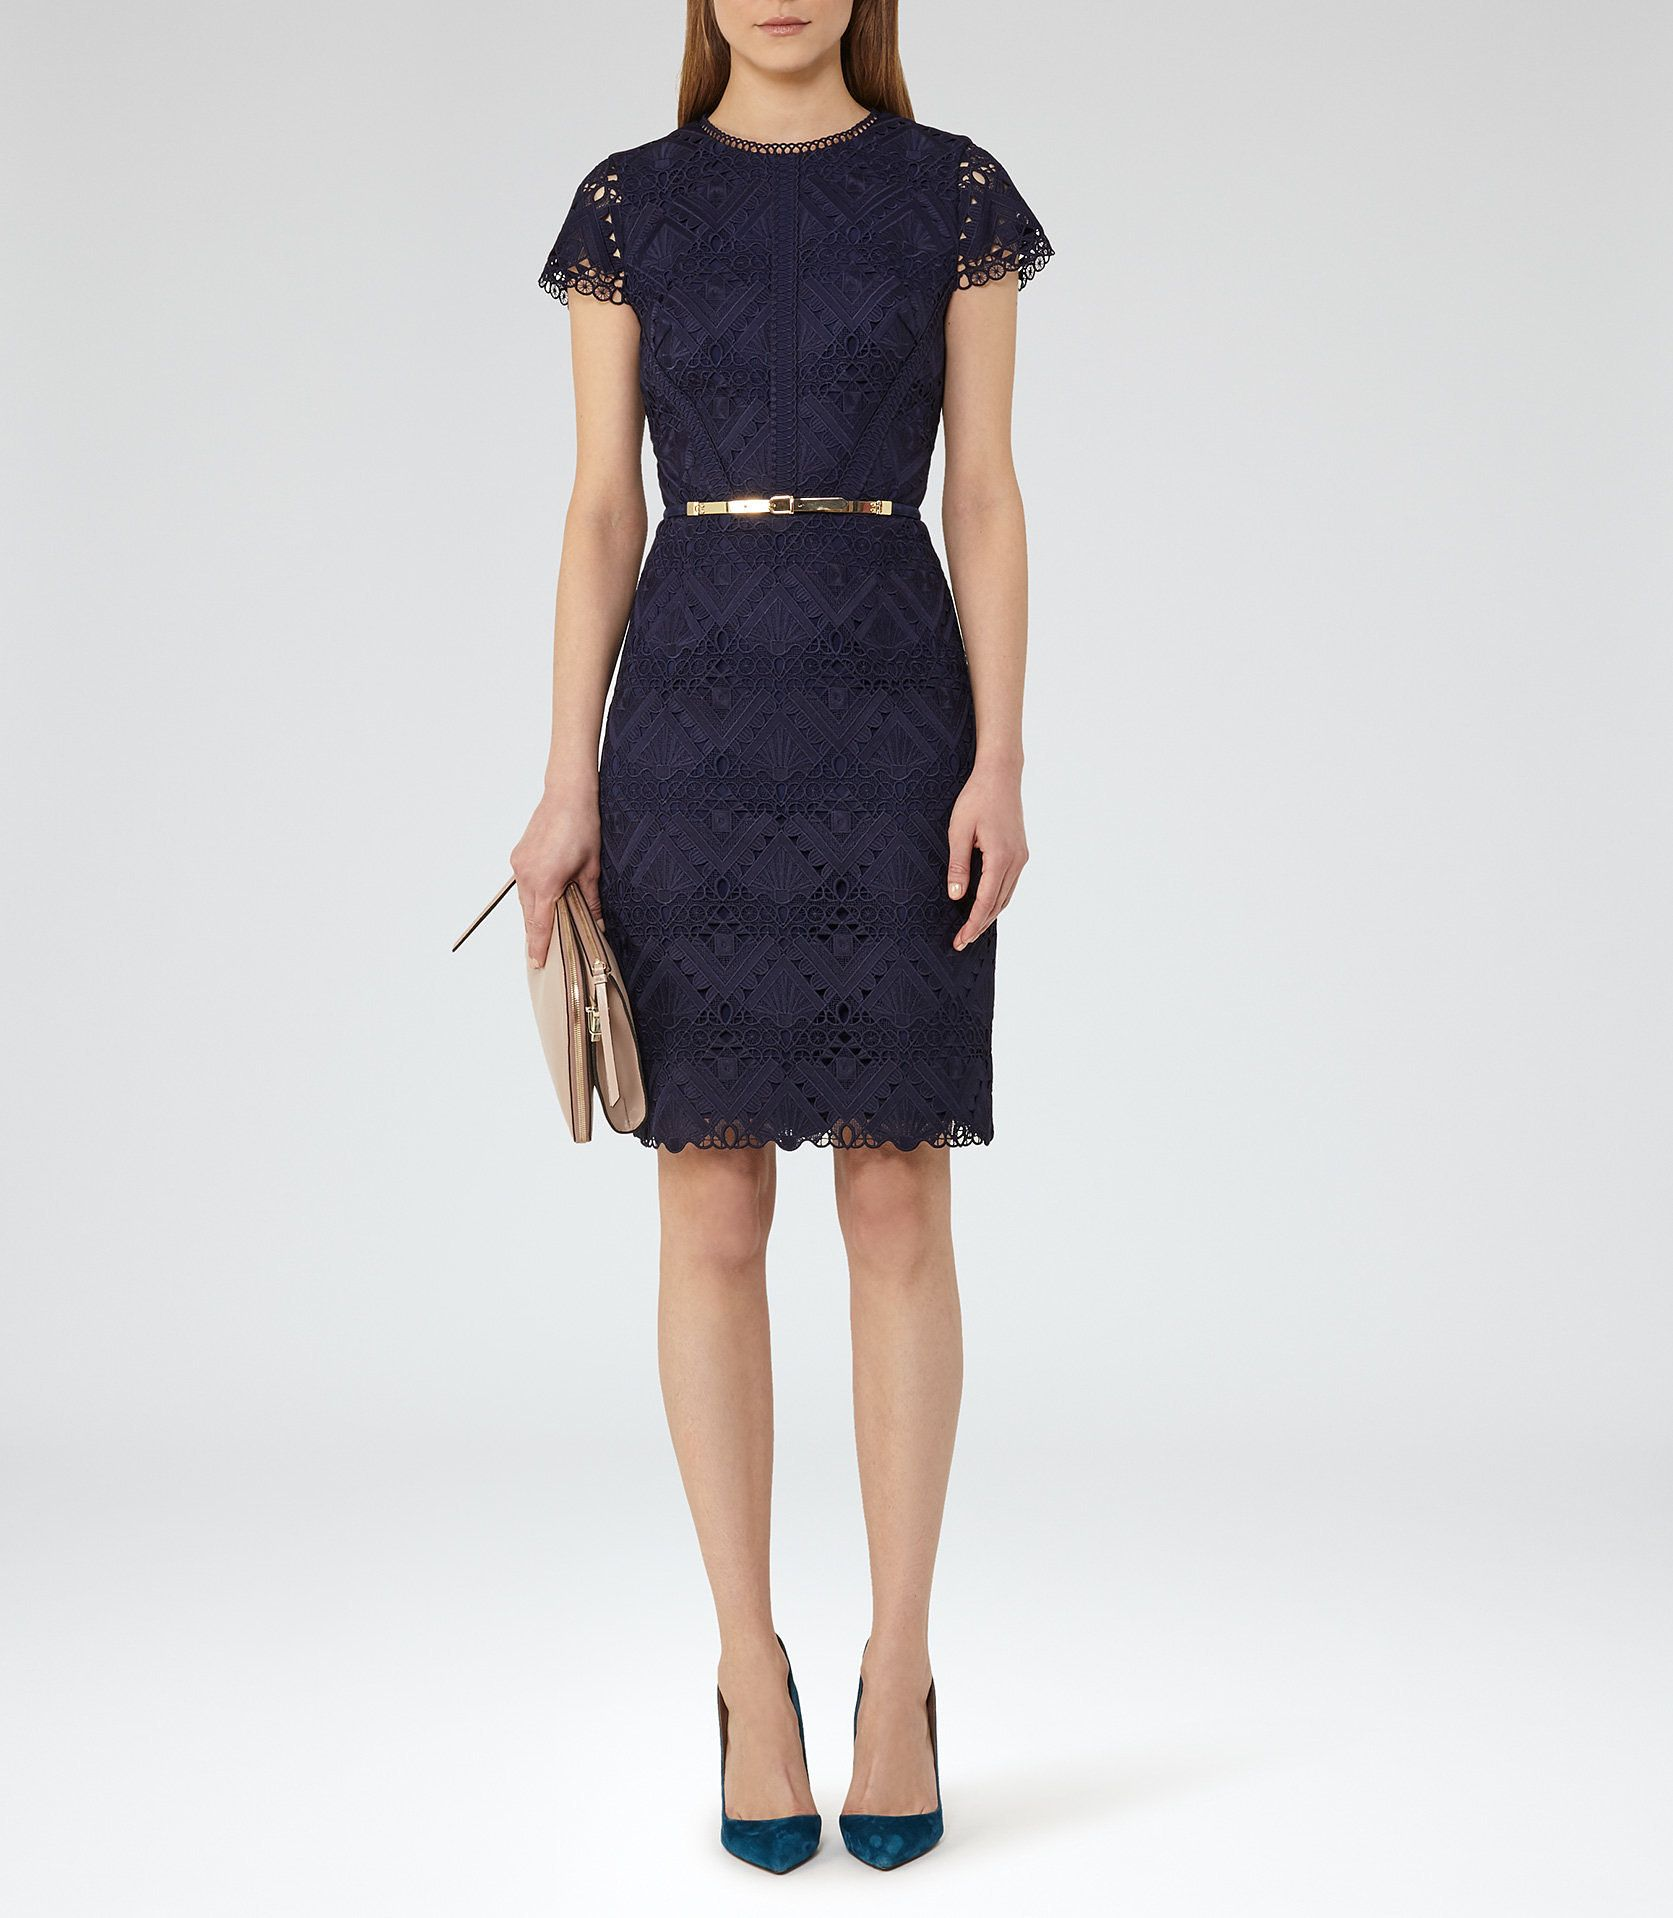 c9c4acb08ec Liza Night Navy Graphic Lace Dress - REISS